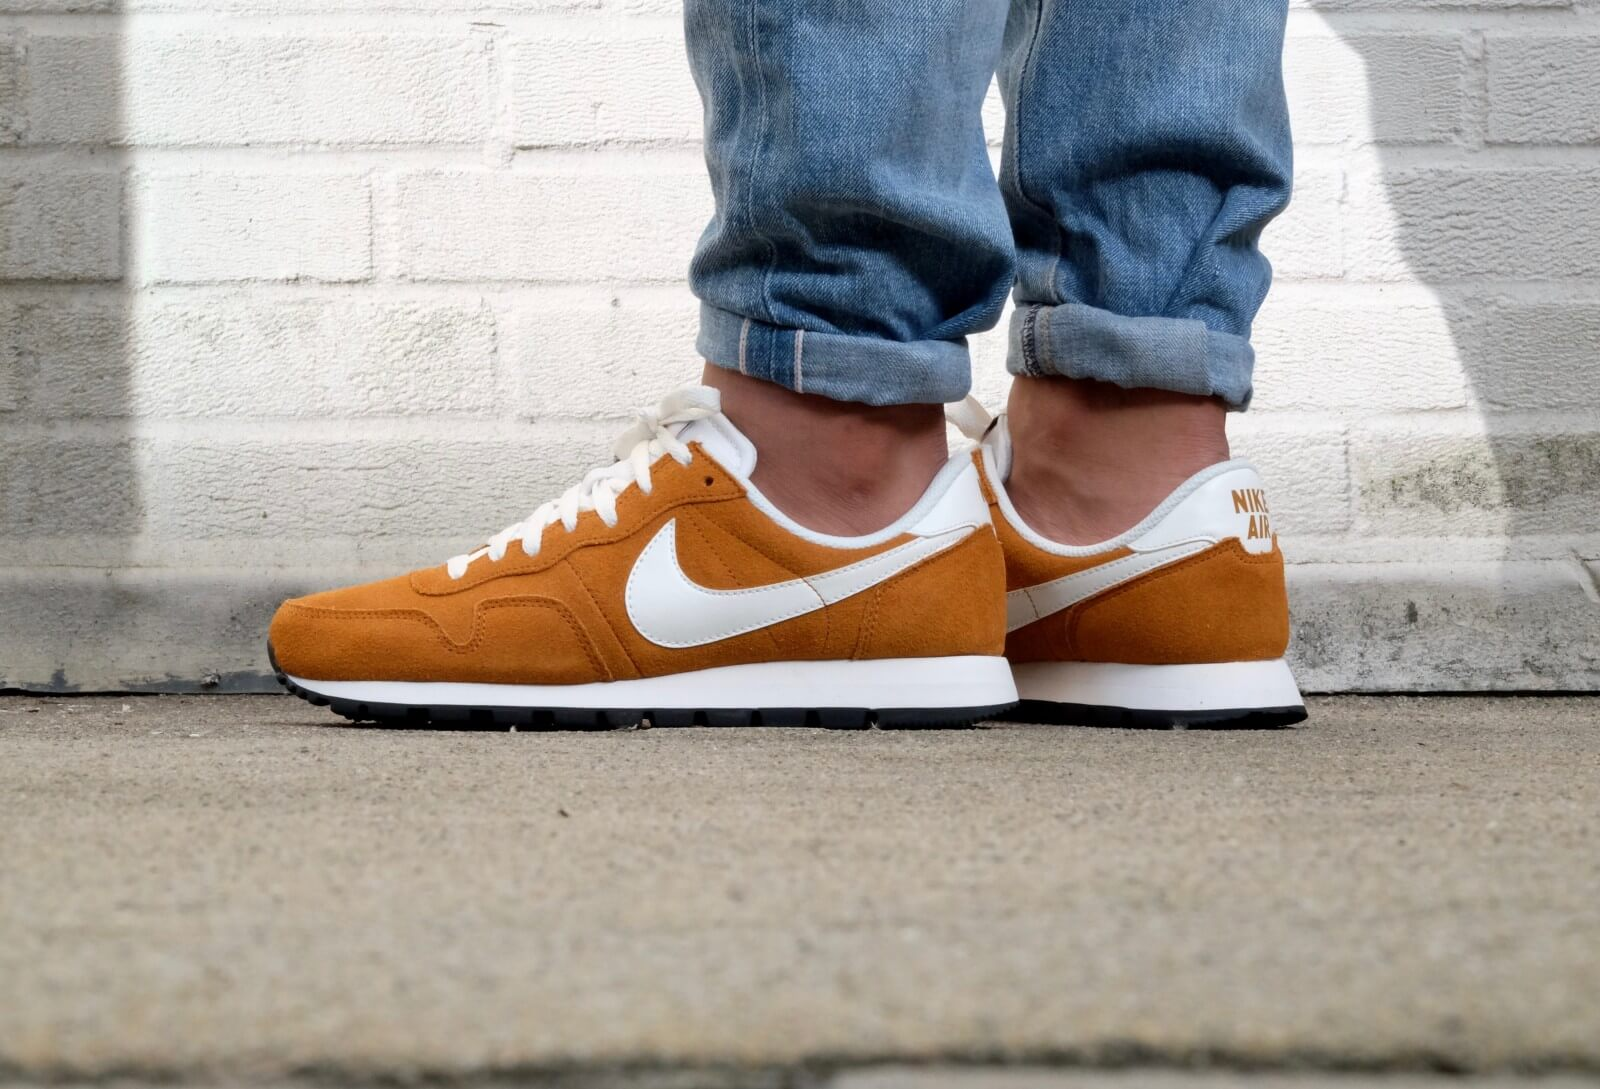 invención Disparates Amigo por correspondencia  Nike Air Pegasus '83 LTR Ginger/ Summit white-Sail-Black - 827922-202